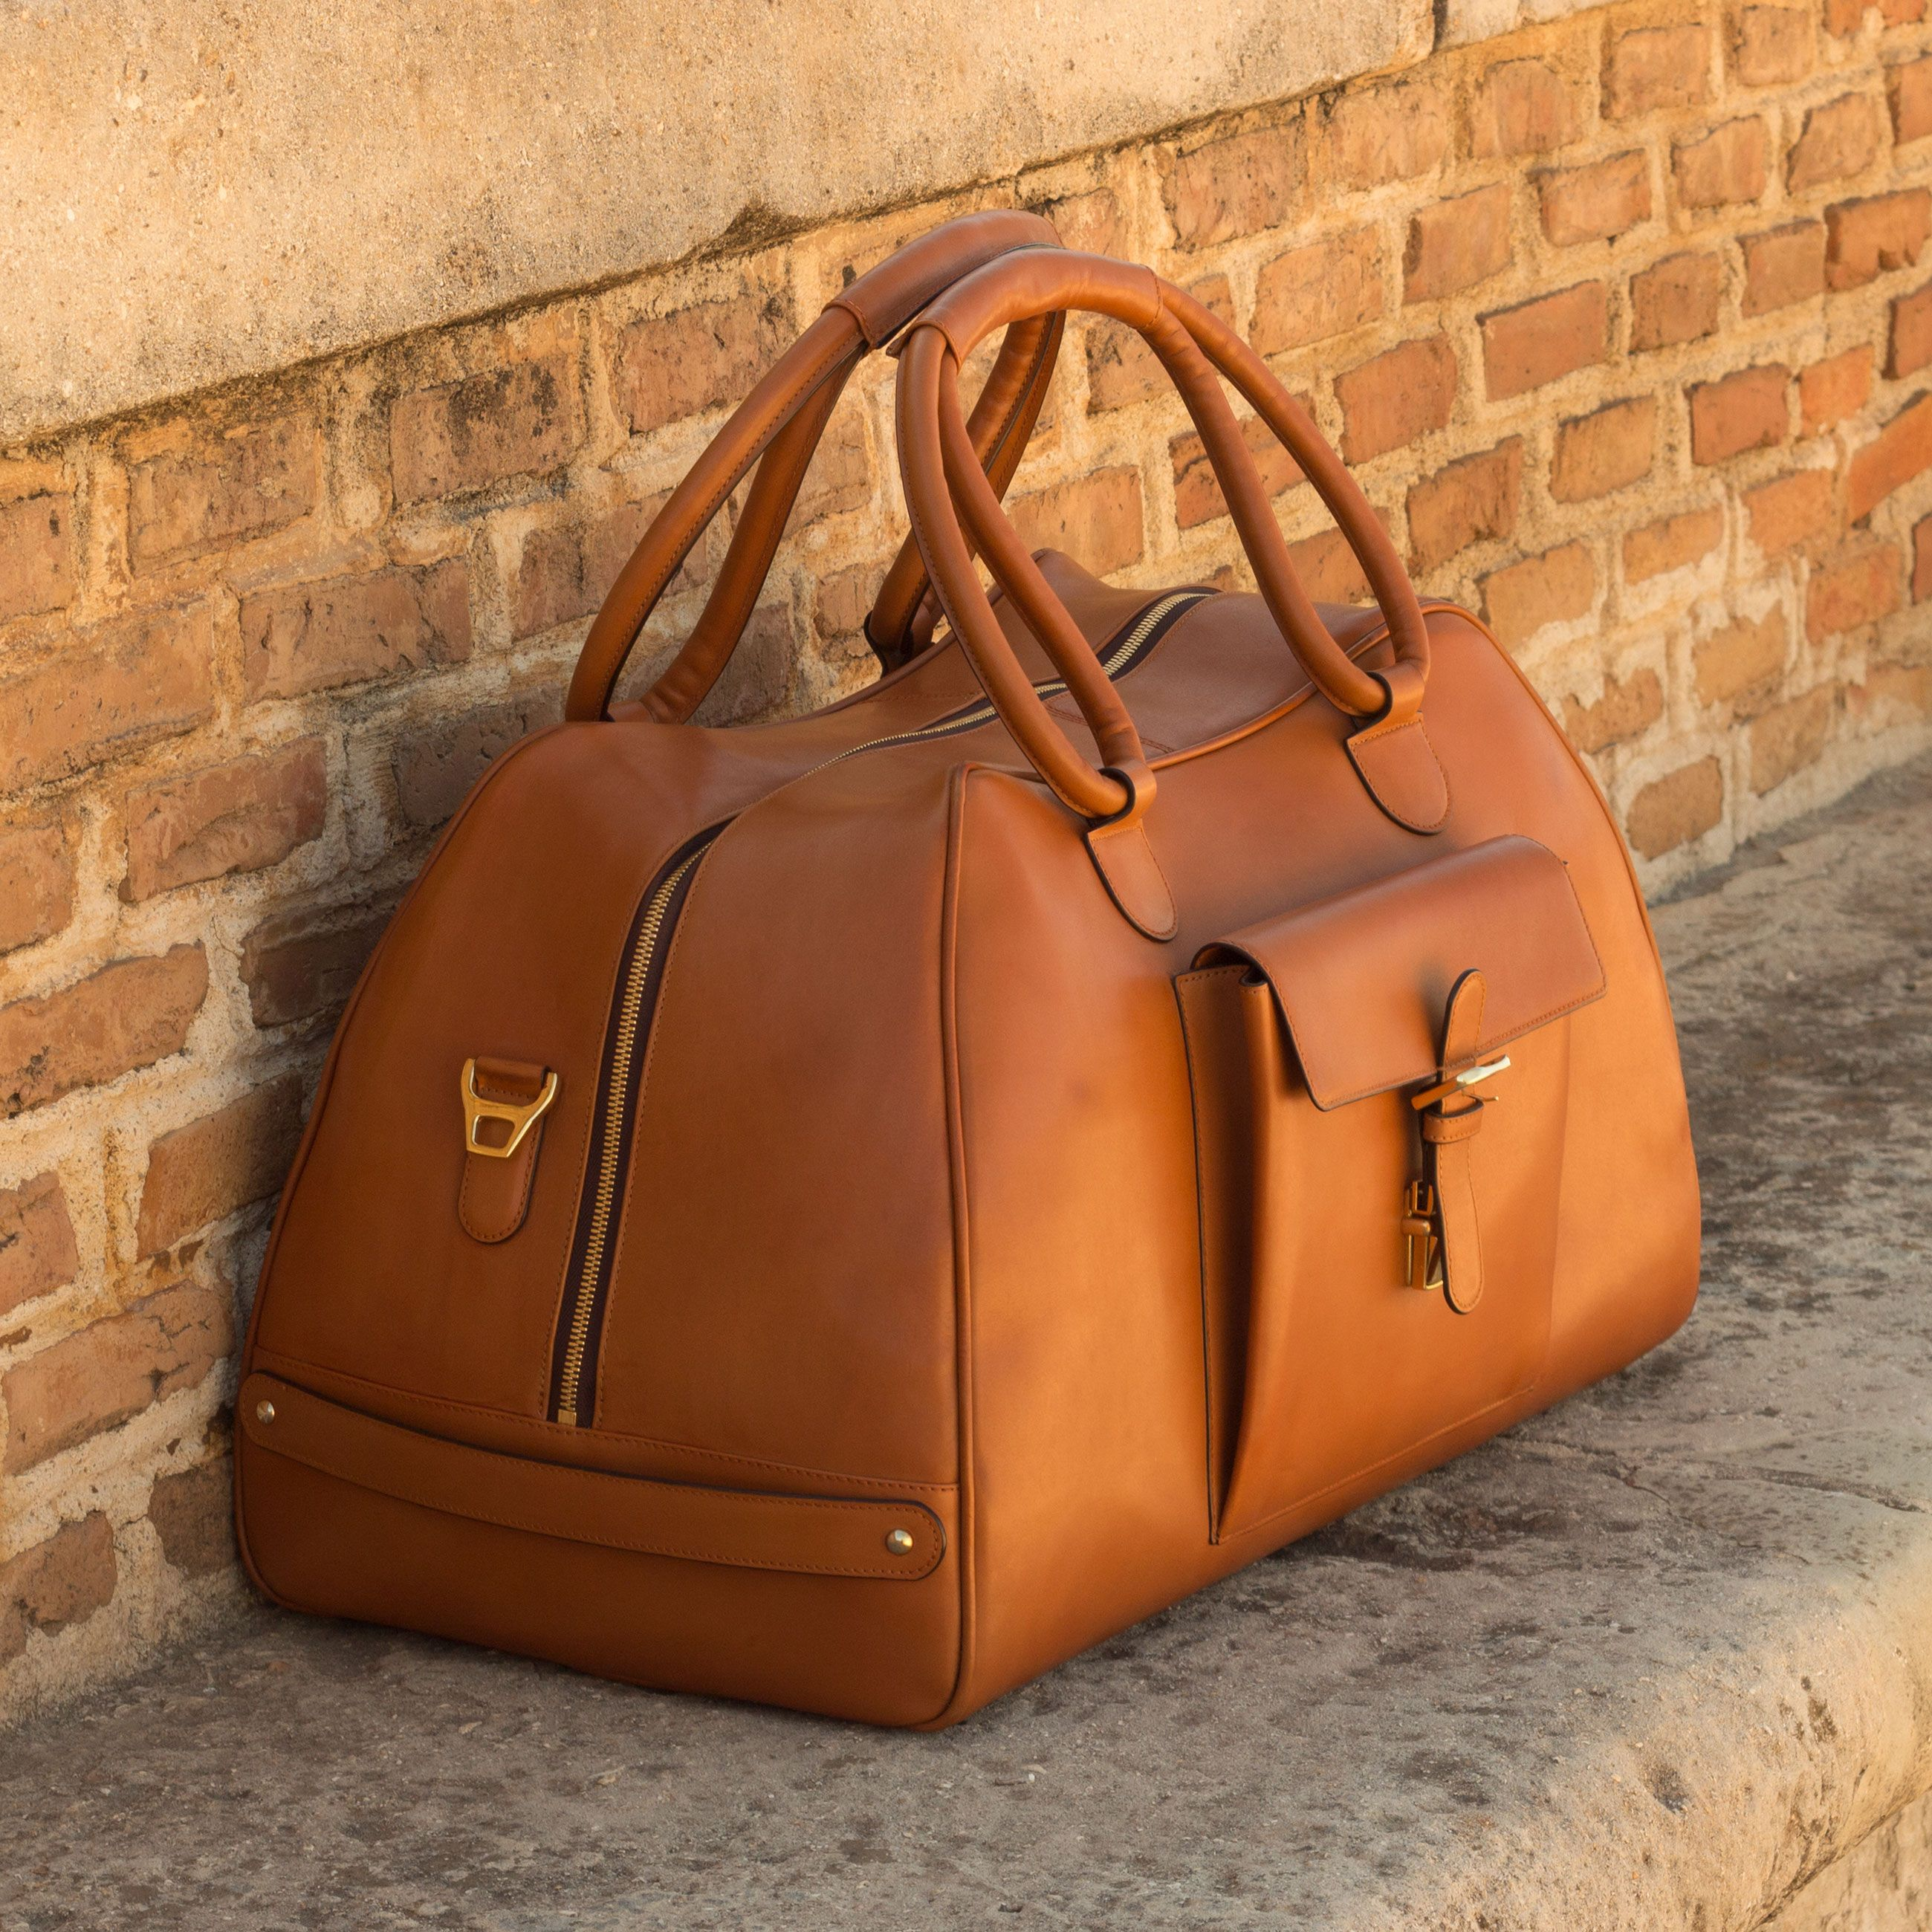 Custom Made Luxury Travel Duffel in Cognac Painted Calf Leather  Robert August Apparel is part of Leather handbags handmade - Handcrafted Custom Made Luxury Travel Duffel in Cognac Painted Calf Leather From Robert August  Create your own custom designed shoes shoes shoesoftheday dapper menswear mensfashion luxurylifestyle success hot style bespoke luxury